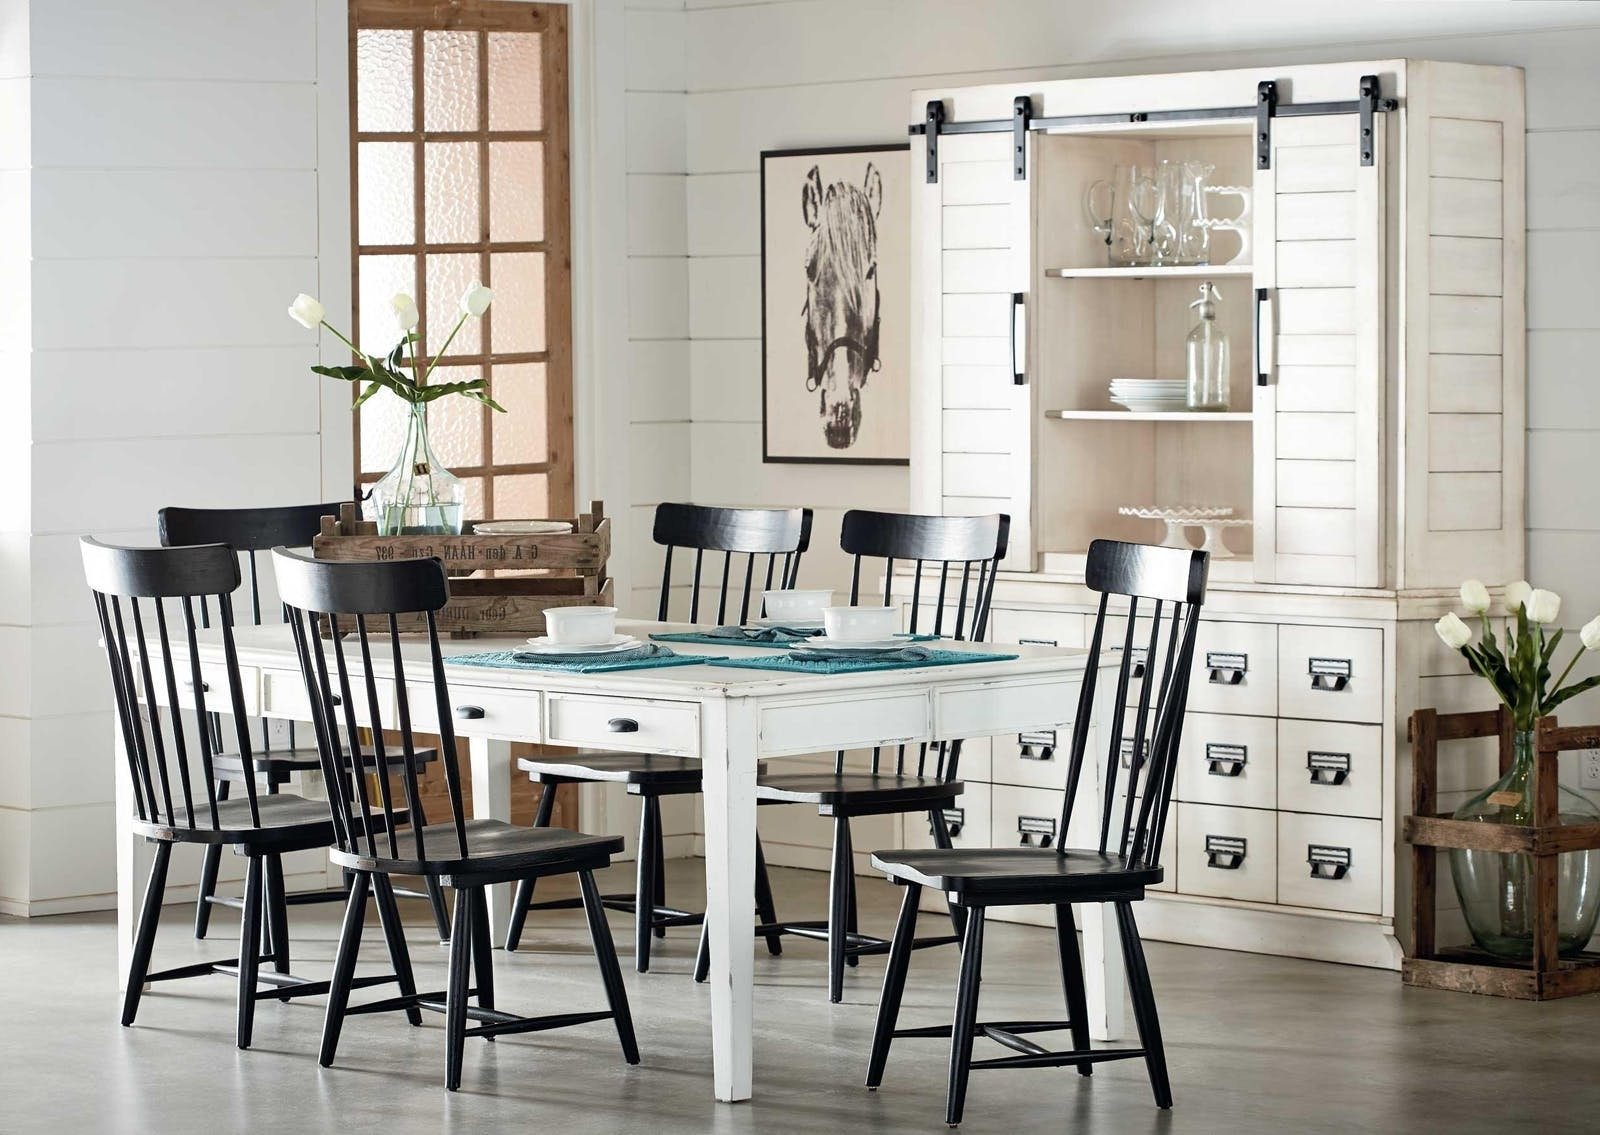 Favorite Magnolia Home Sawbuck Dining Tables Regarding Great Magnolia Home Dining Table — Indoor Outdoor Ideas : Ideas To (View 2 of 25)